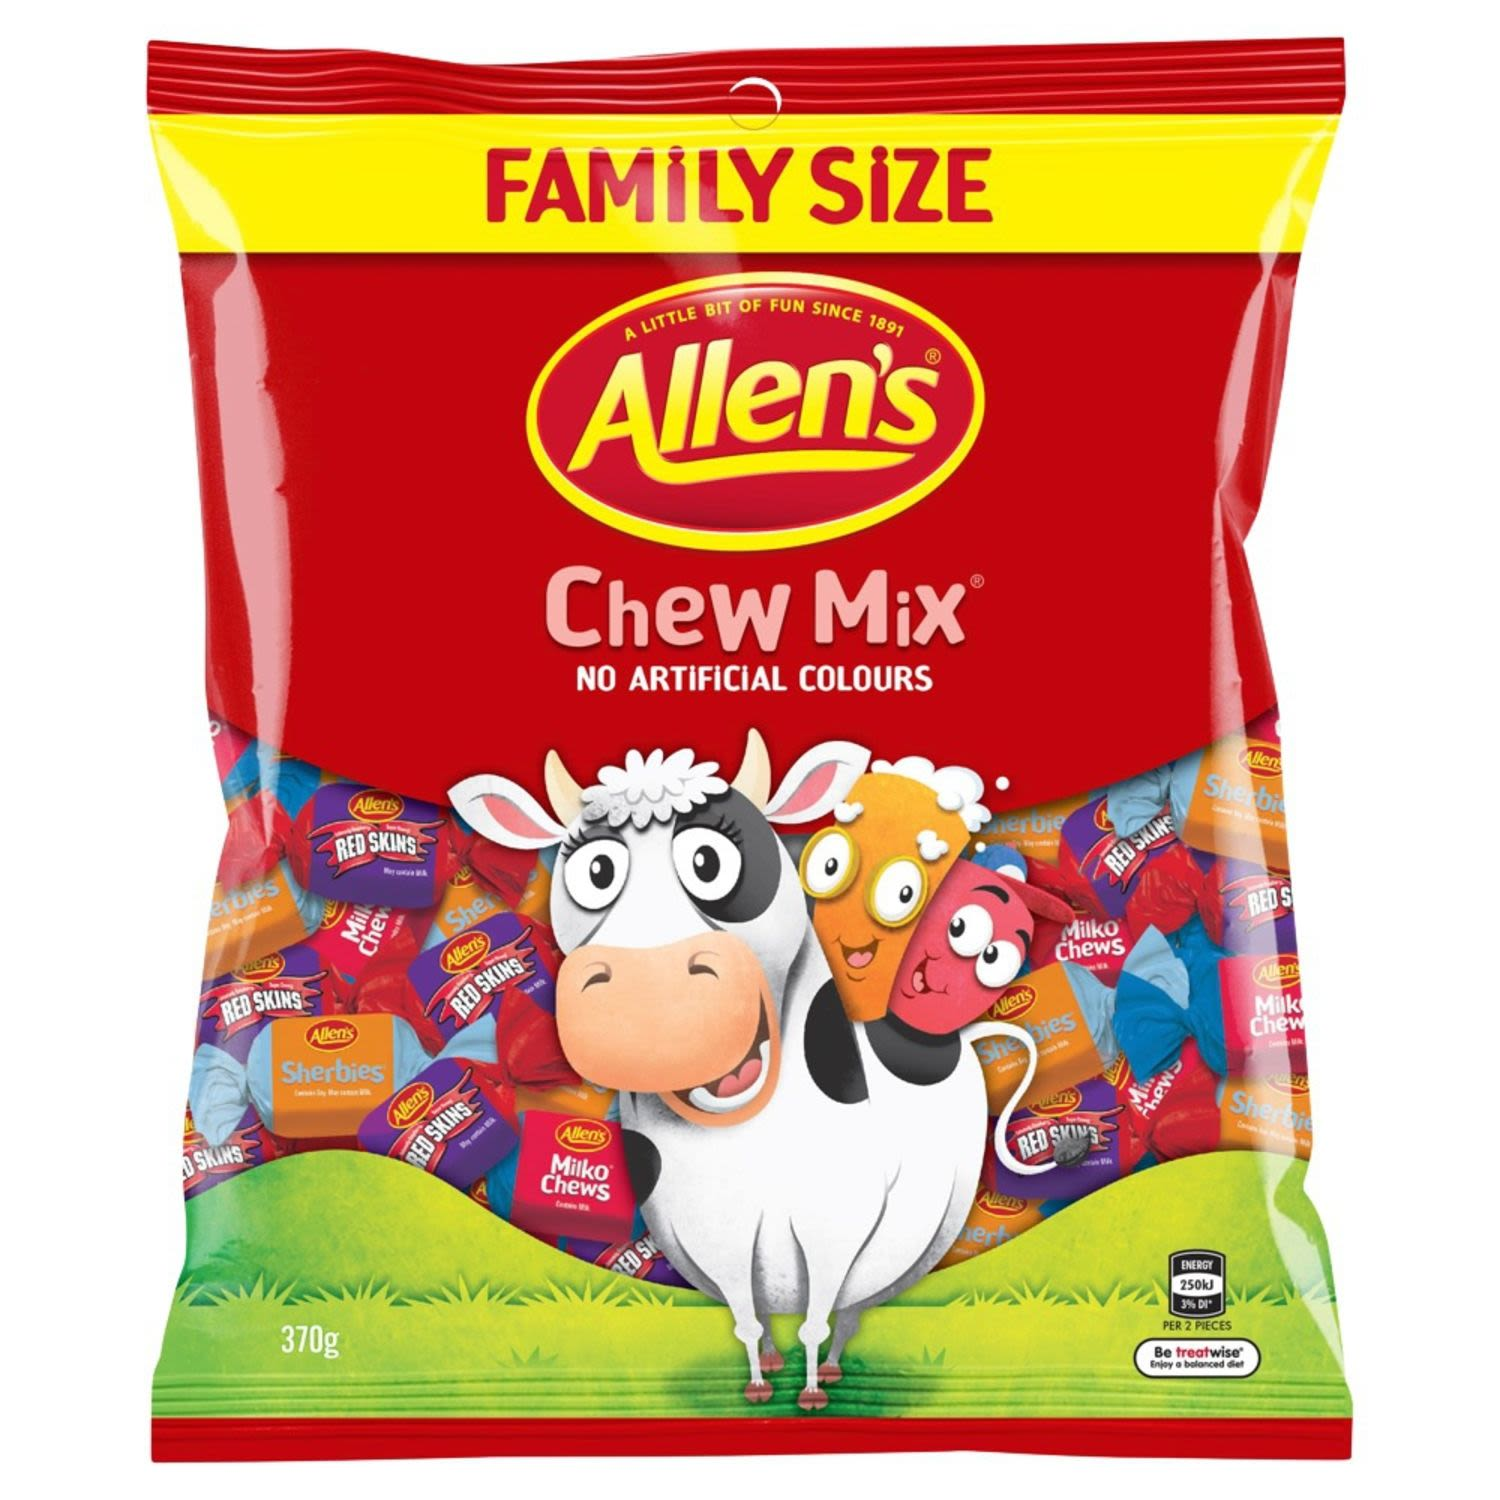 Allen's Chewmix is packed with a mix of creamy milko chews, tangy sherbies and intensely raspberry flavoured redskins. Perfect for sharing so grab a bag, find your favourite and start chewing before they're all gone. Quantity of each type of lolly in each bag may vary. 2 Pieces = 1 Portion. Contains no artificial colours, so are great to share with family and friends. Milko Chews contain 10% Milk Solids. Sherbies contains Soy and may contain Milk. Redskins may contain Milk. Allen's makes smiles!